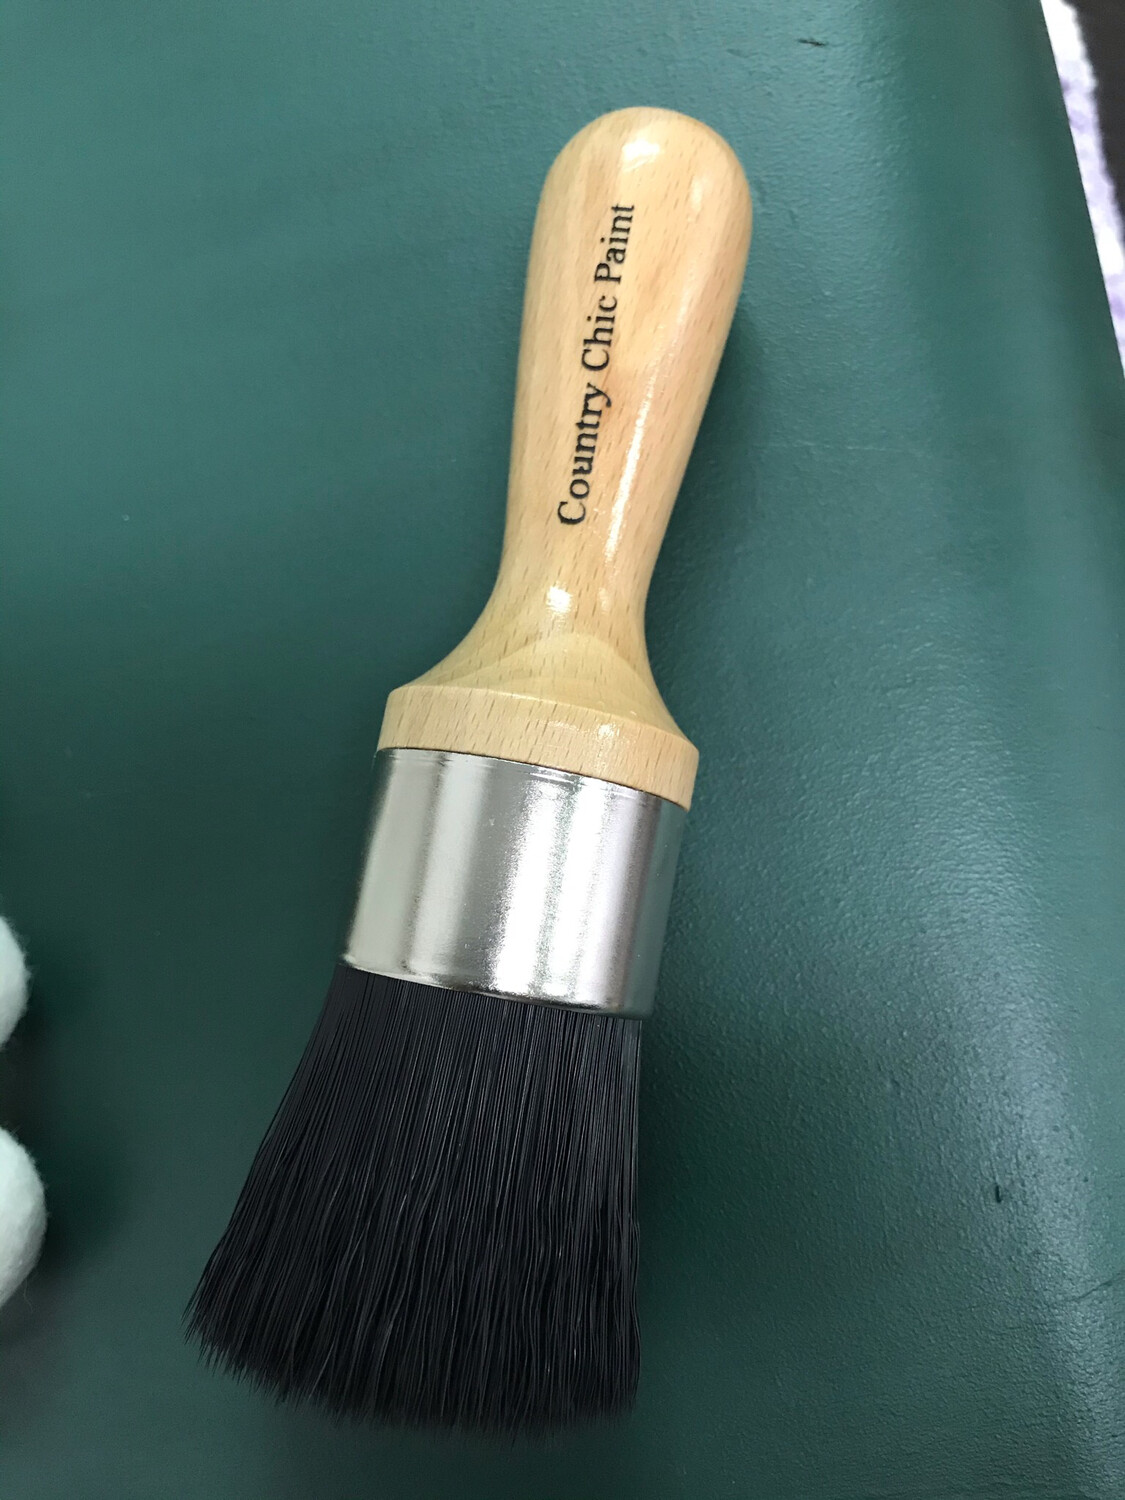 Country Chic Oval Brush